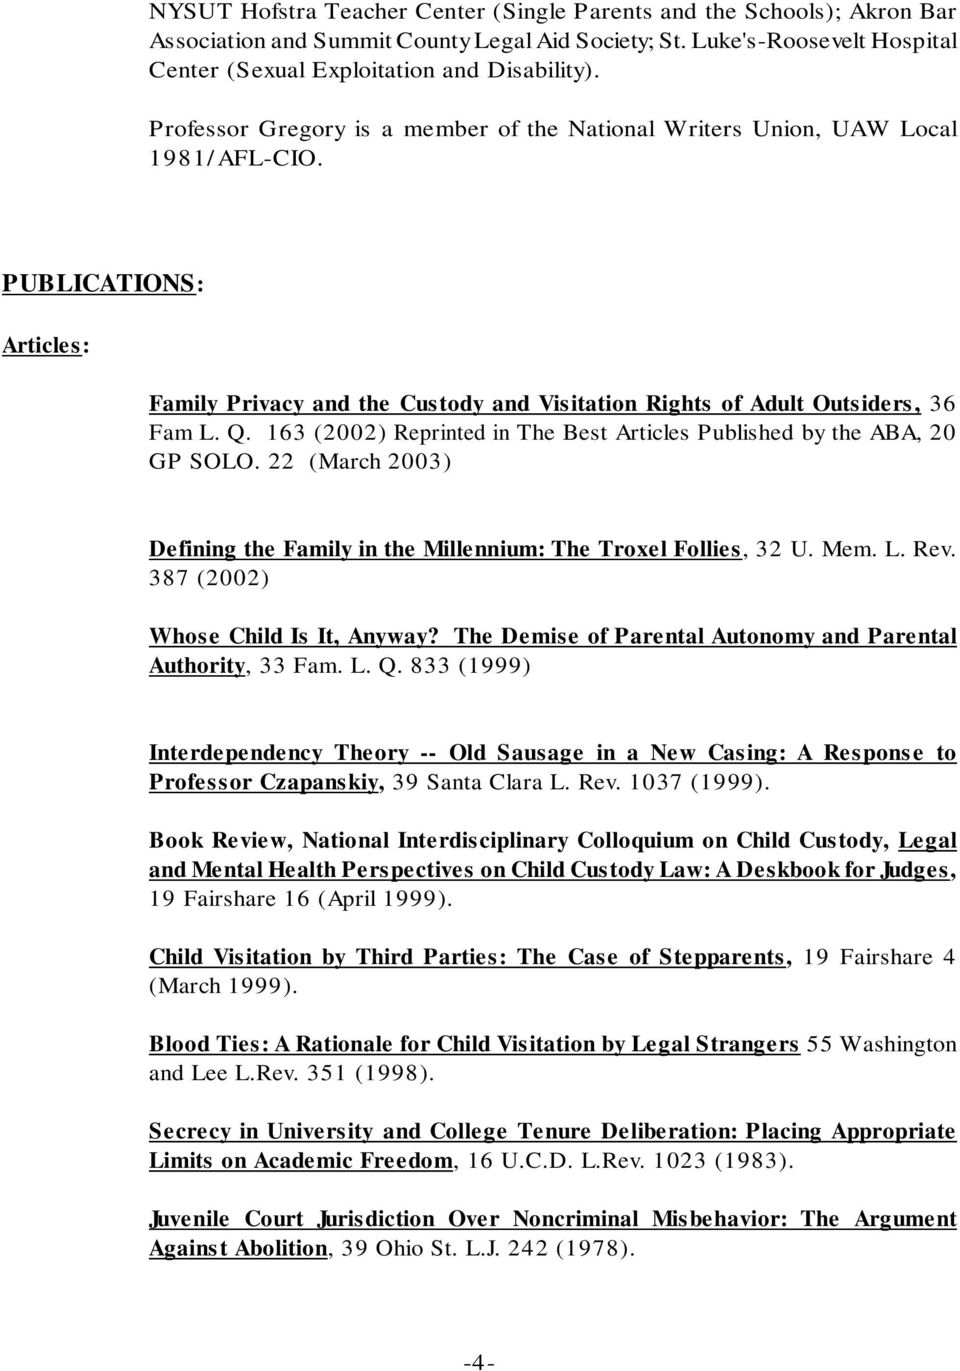 163 (2002) Reprinted in The Best Articles Published by the ABA, 20 GP SOLO. 22 (March 2003) Defining the Family in the Millennium: The Troxel Follies, 32 U. Mem. L. Rev.